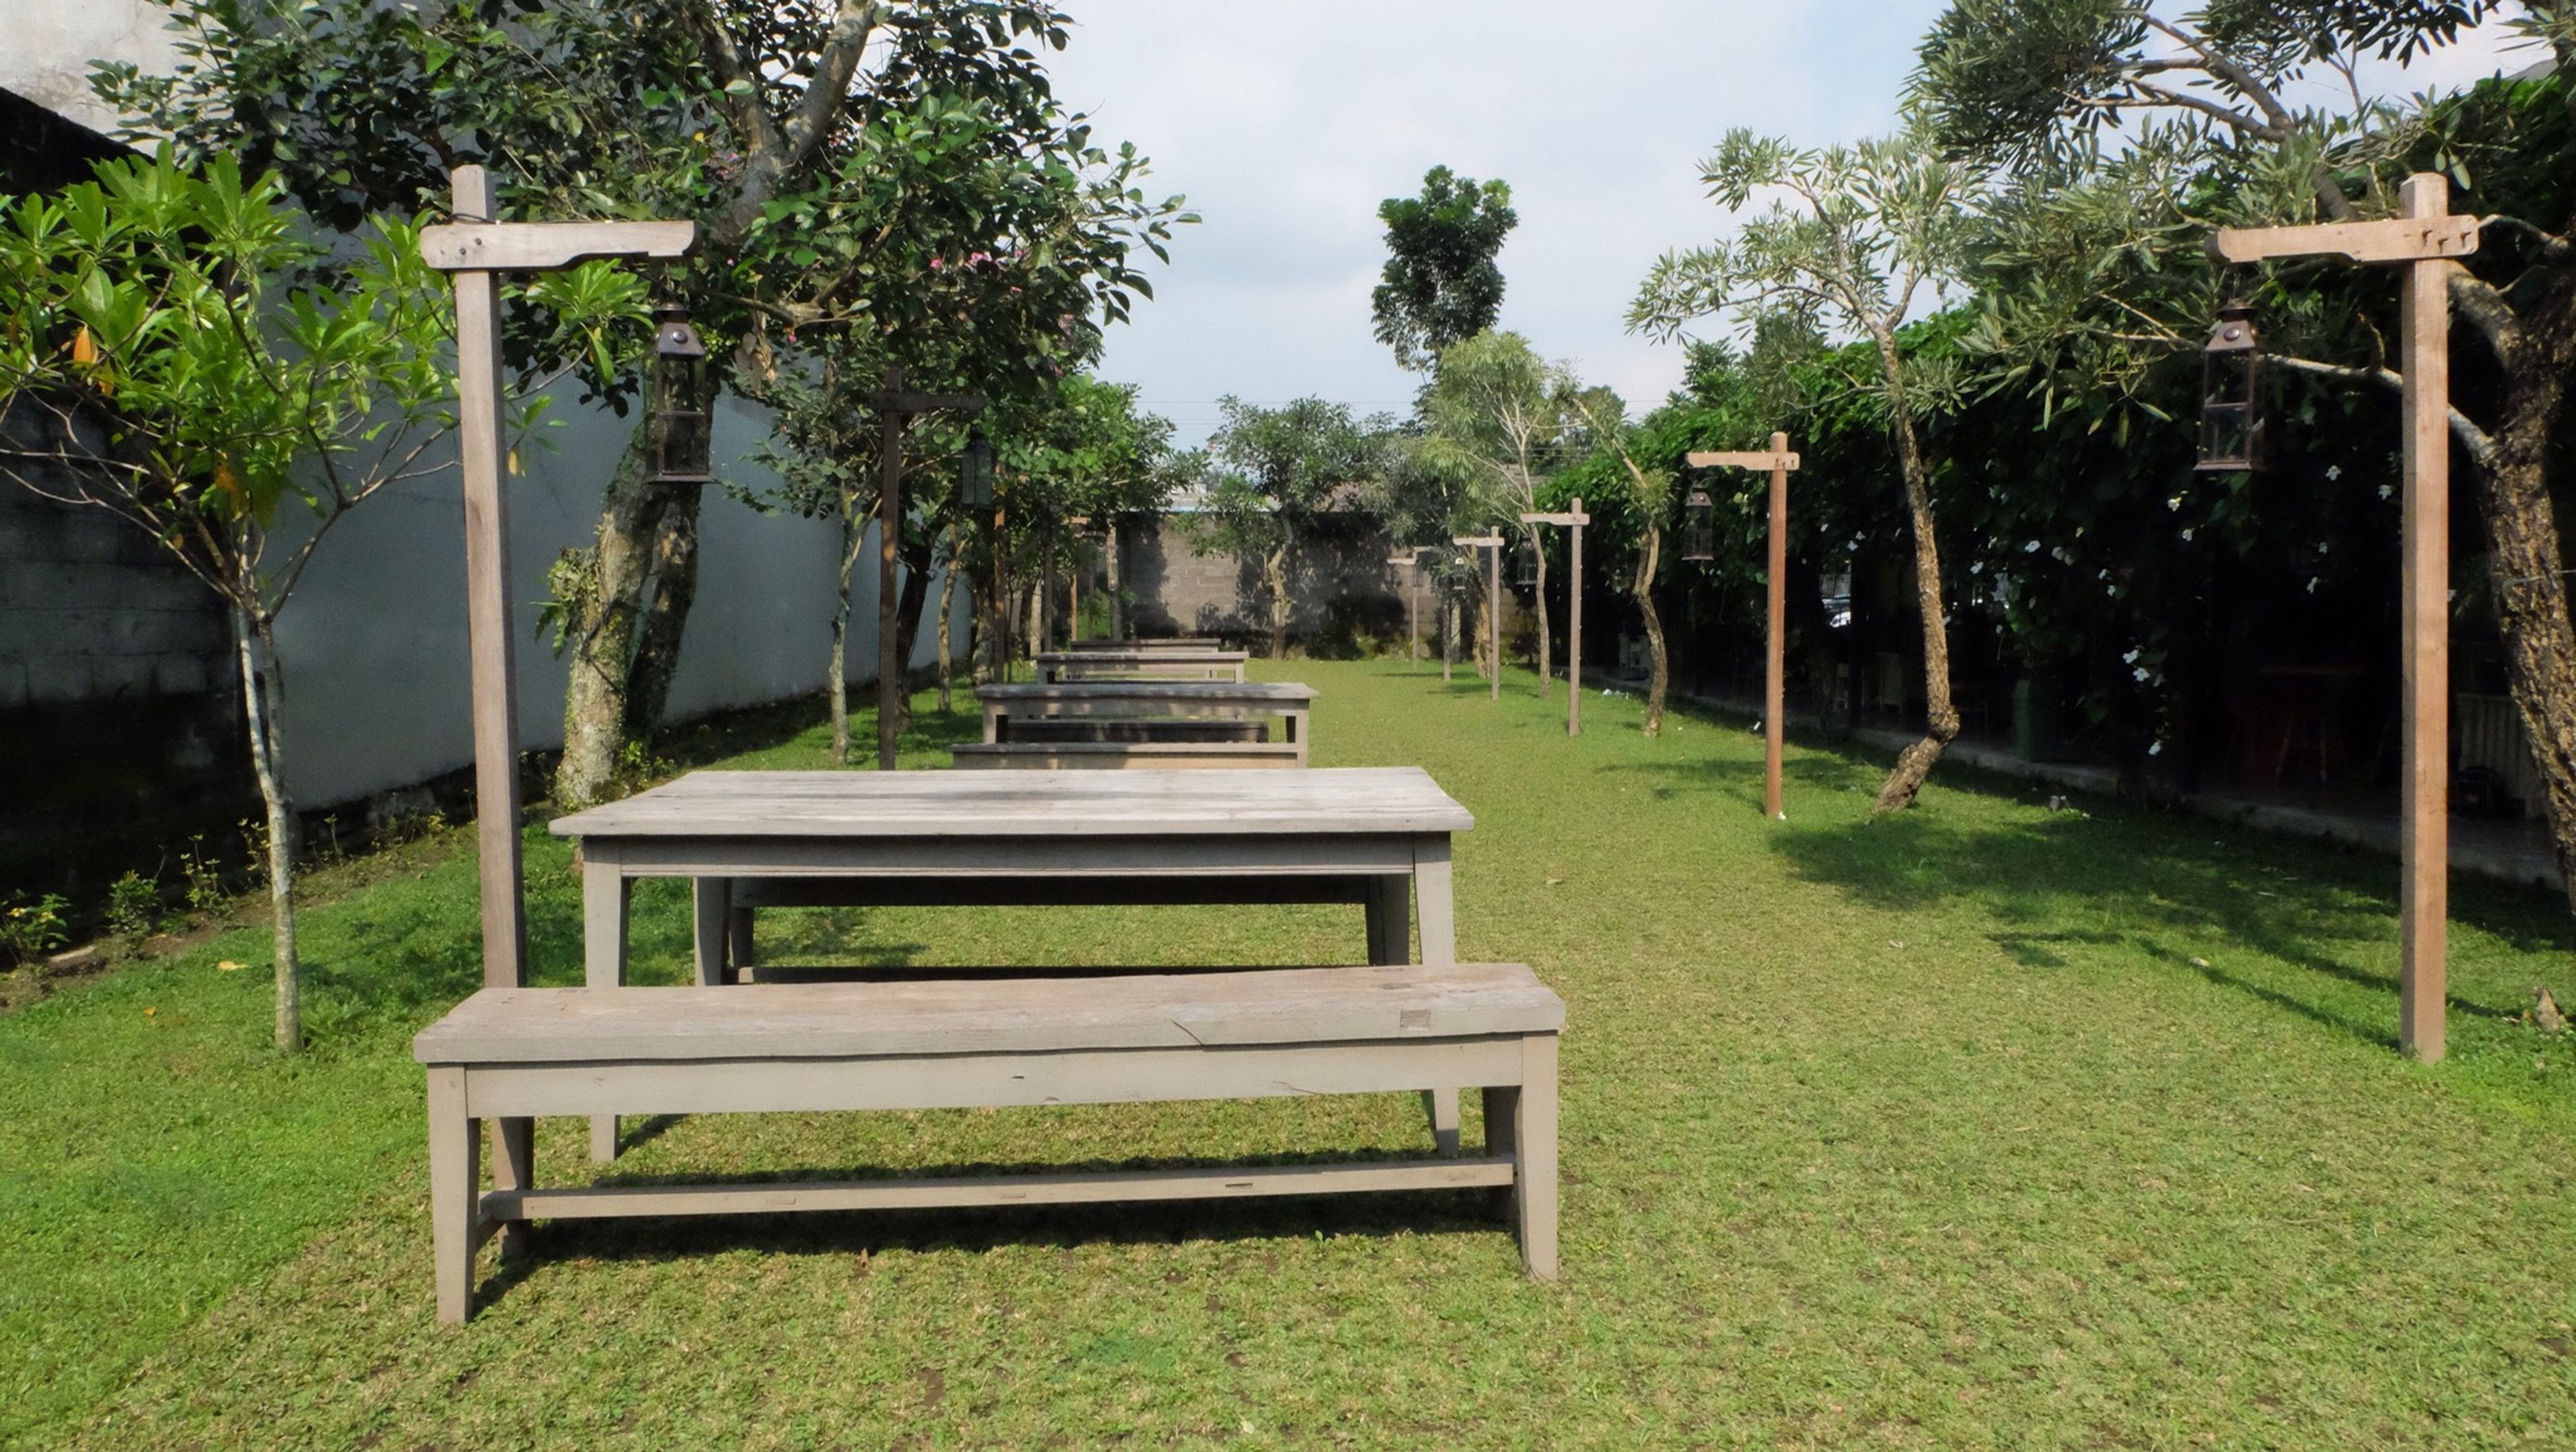 bench, empty, tree, grass, absence, chair, park - man made space, green color, park bench, tranquility, seat, park, growth, nature, lawn, tranquil scene, relaxation, gazebo, table, day